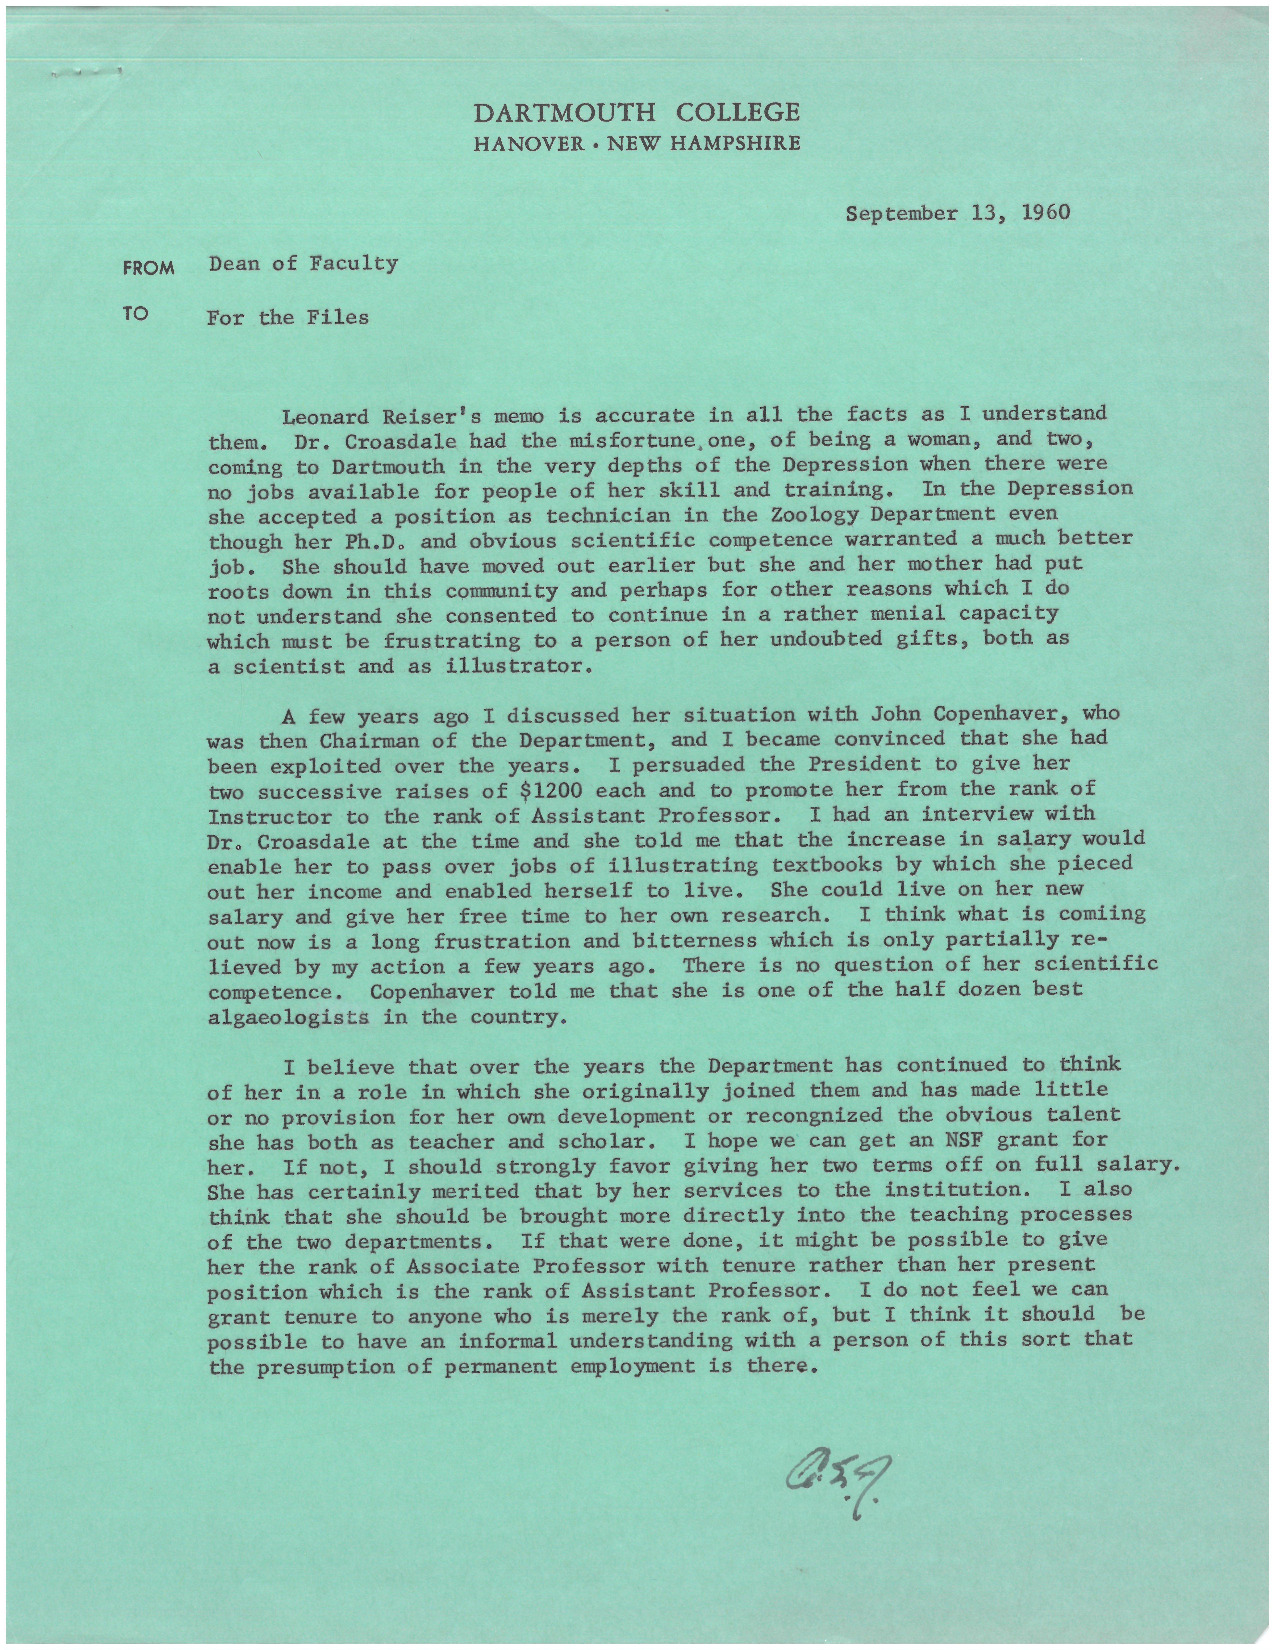 "Arthur Jensen, Dean of the Faculty, responds to the ""Conversation with Dr. Hannah Croasdale"" memo, in which Rieser asked him to provide more information regarding Prof. Croasdale's history in the Zoology Department. Jensen corroborates Croasdale's claims, writing that ""Dr. Croasdale had the misfortune of being a woman… in the Depression, she accepted a position as a technician in the Zoology Department even though her Ph.D. and obvious scientific competence warranted a much better job… There is no question of her scientific competence. Copenhaver told me that she is one of the half dozen best algologists in the country."""